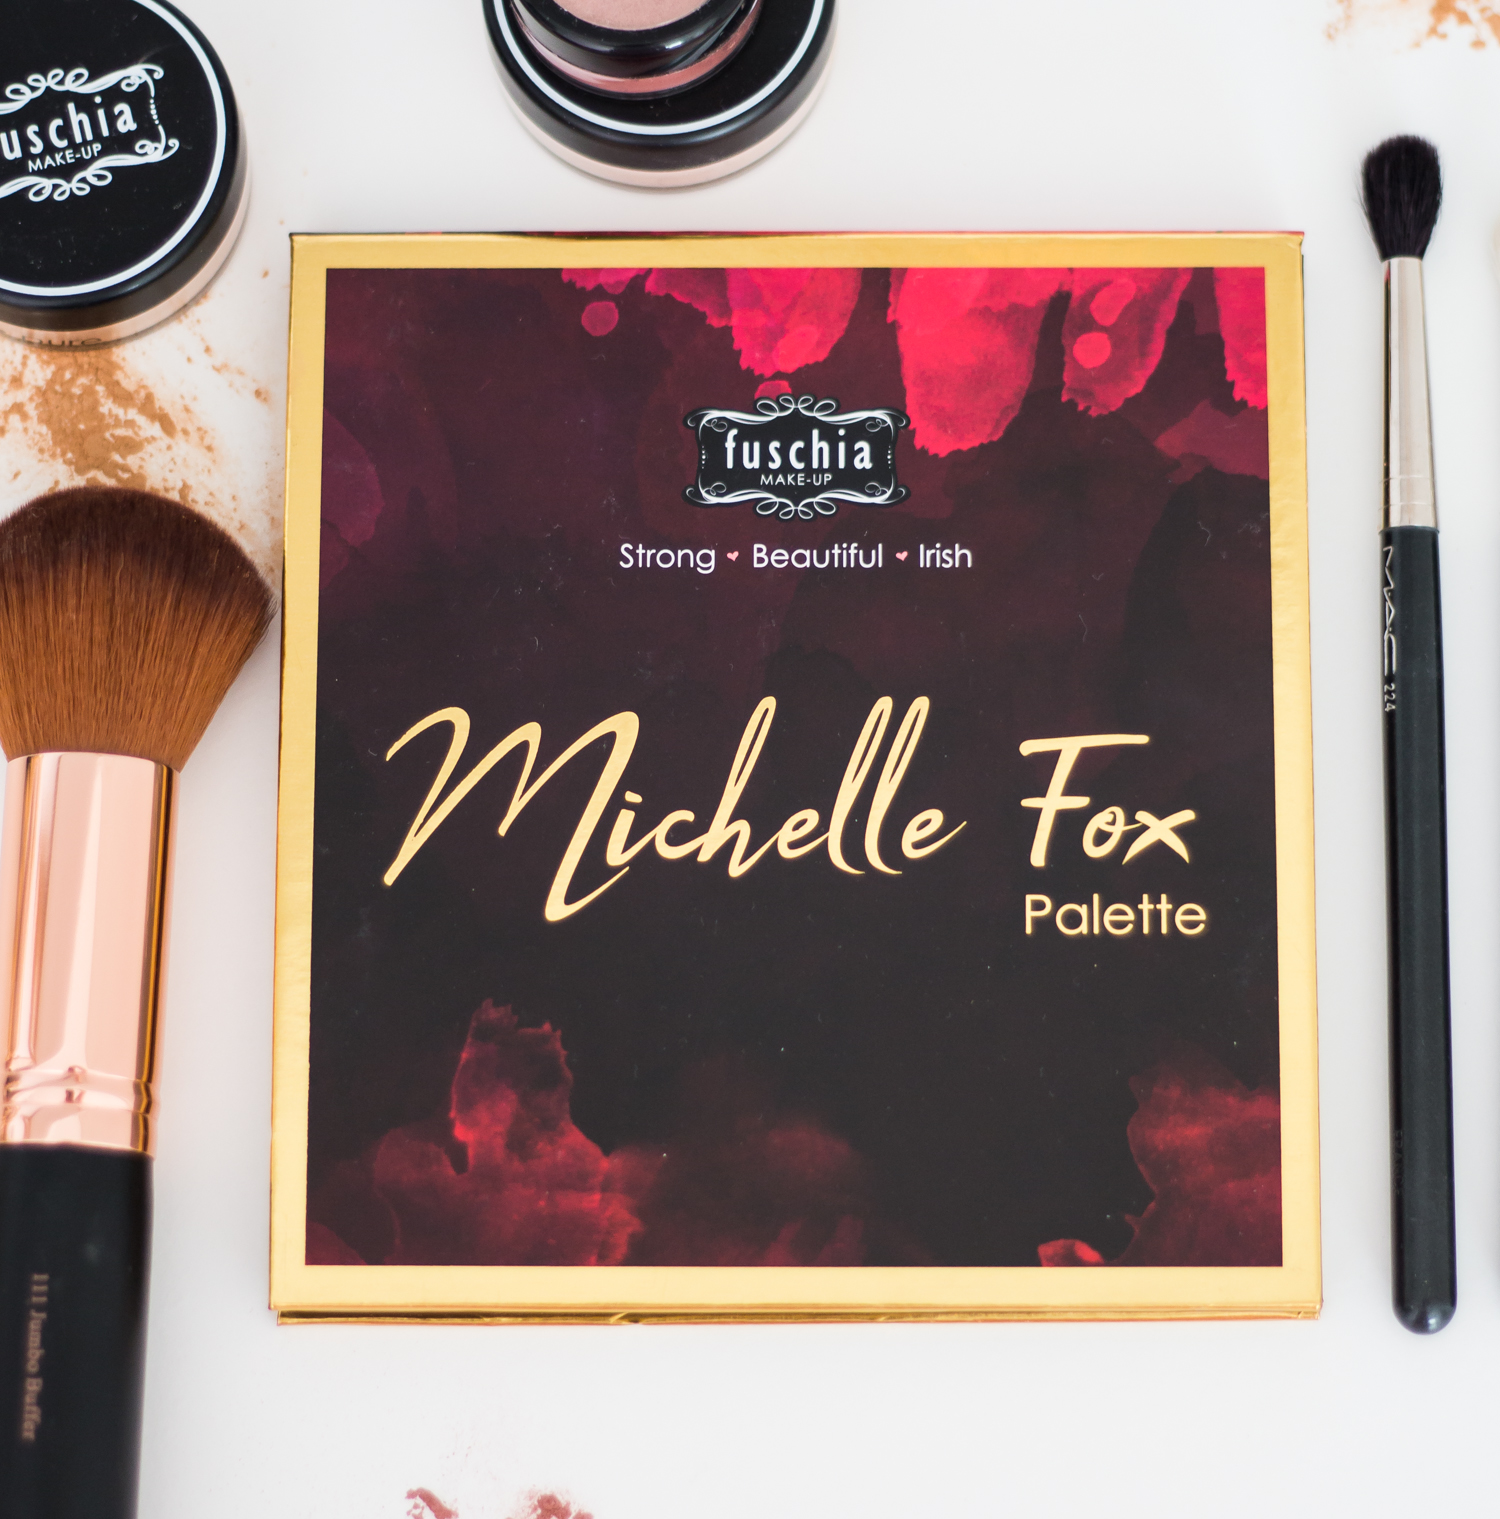 fuschia makeup x michelle fox palette